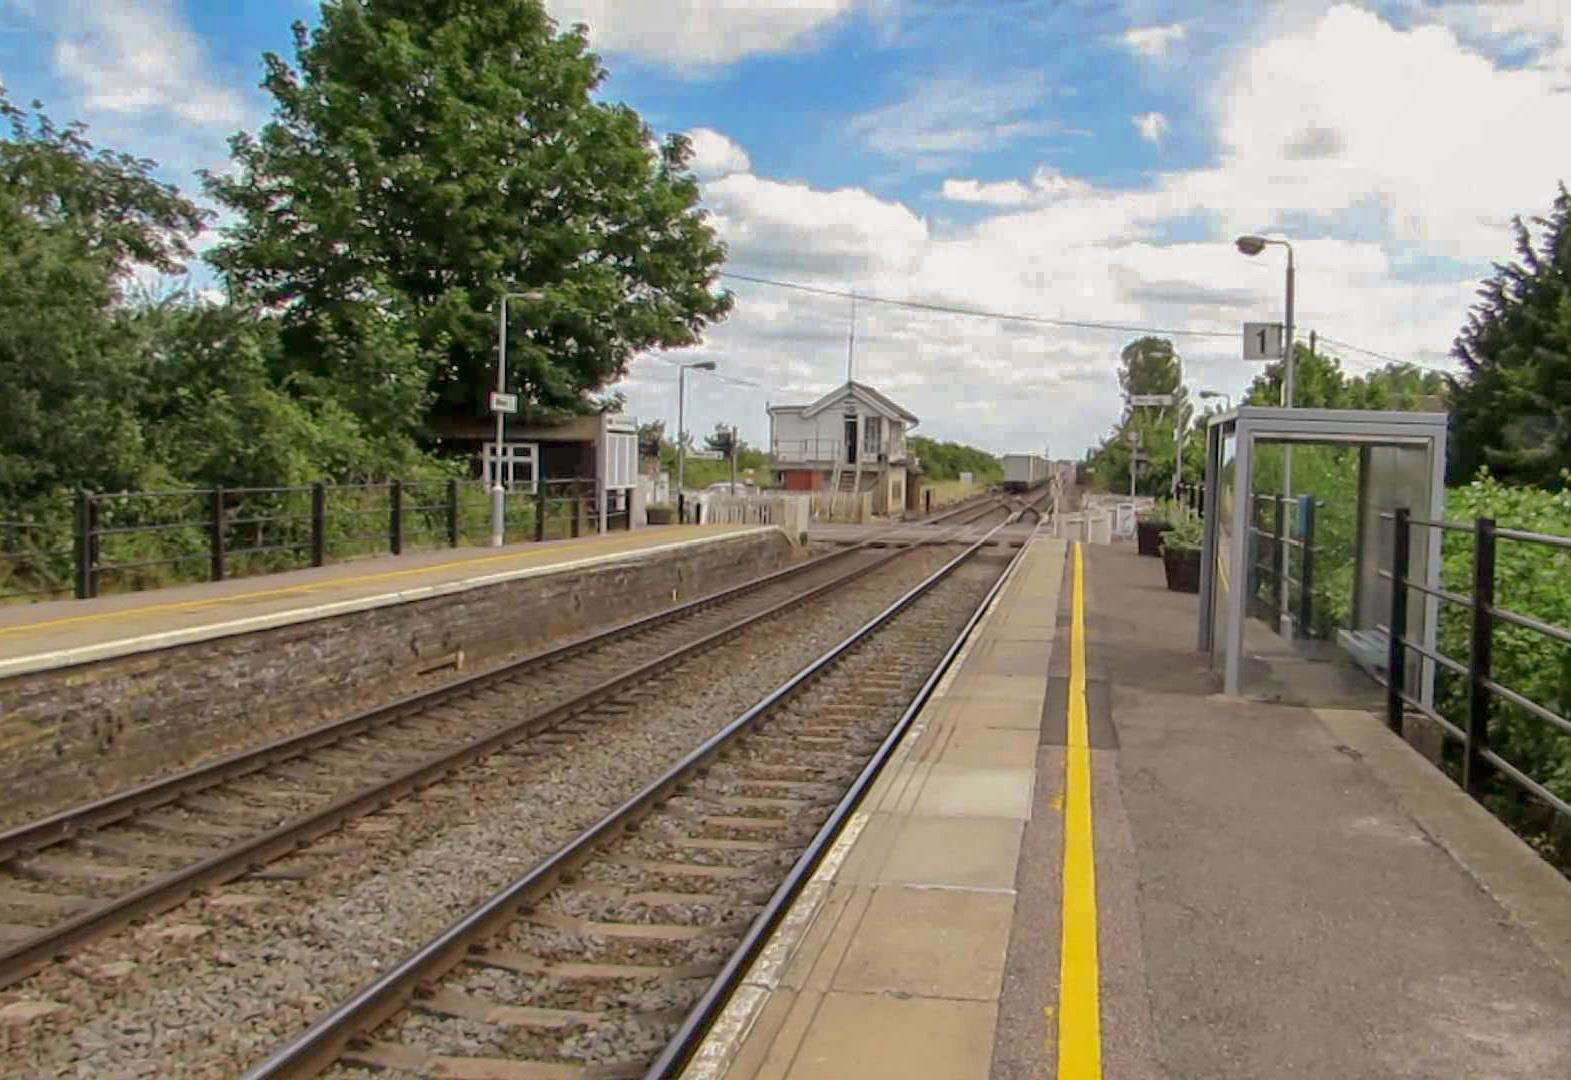 Full steam ahead for railway improvements at two Fenland stations - Manea and Whittlesey